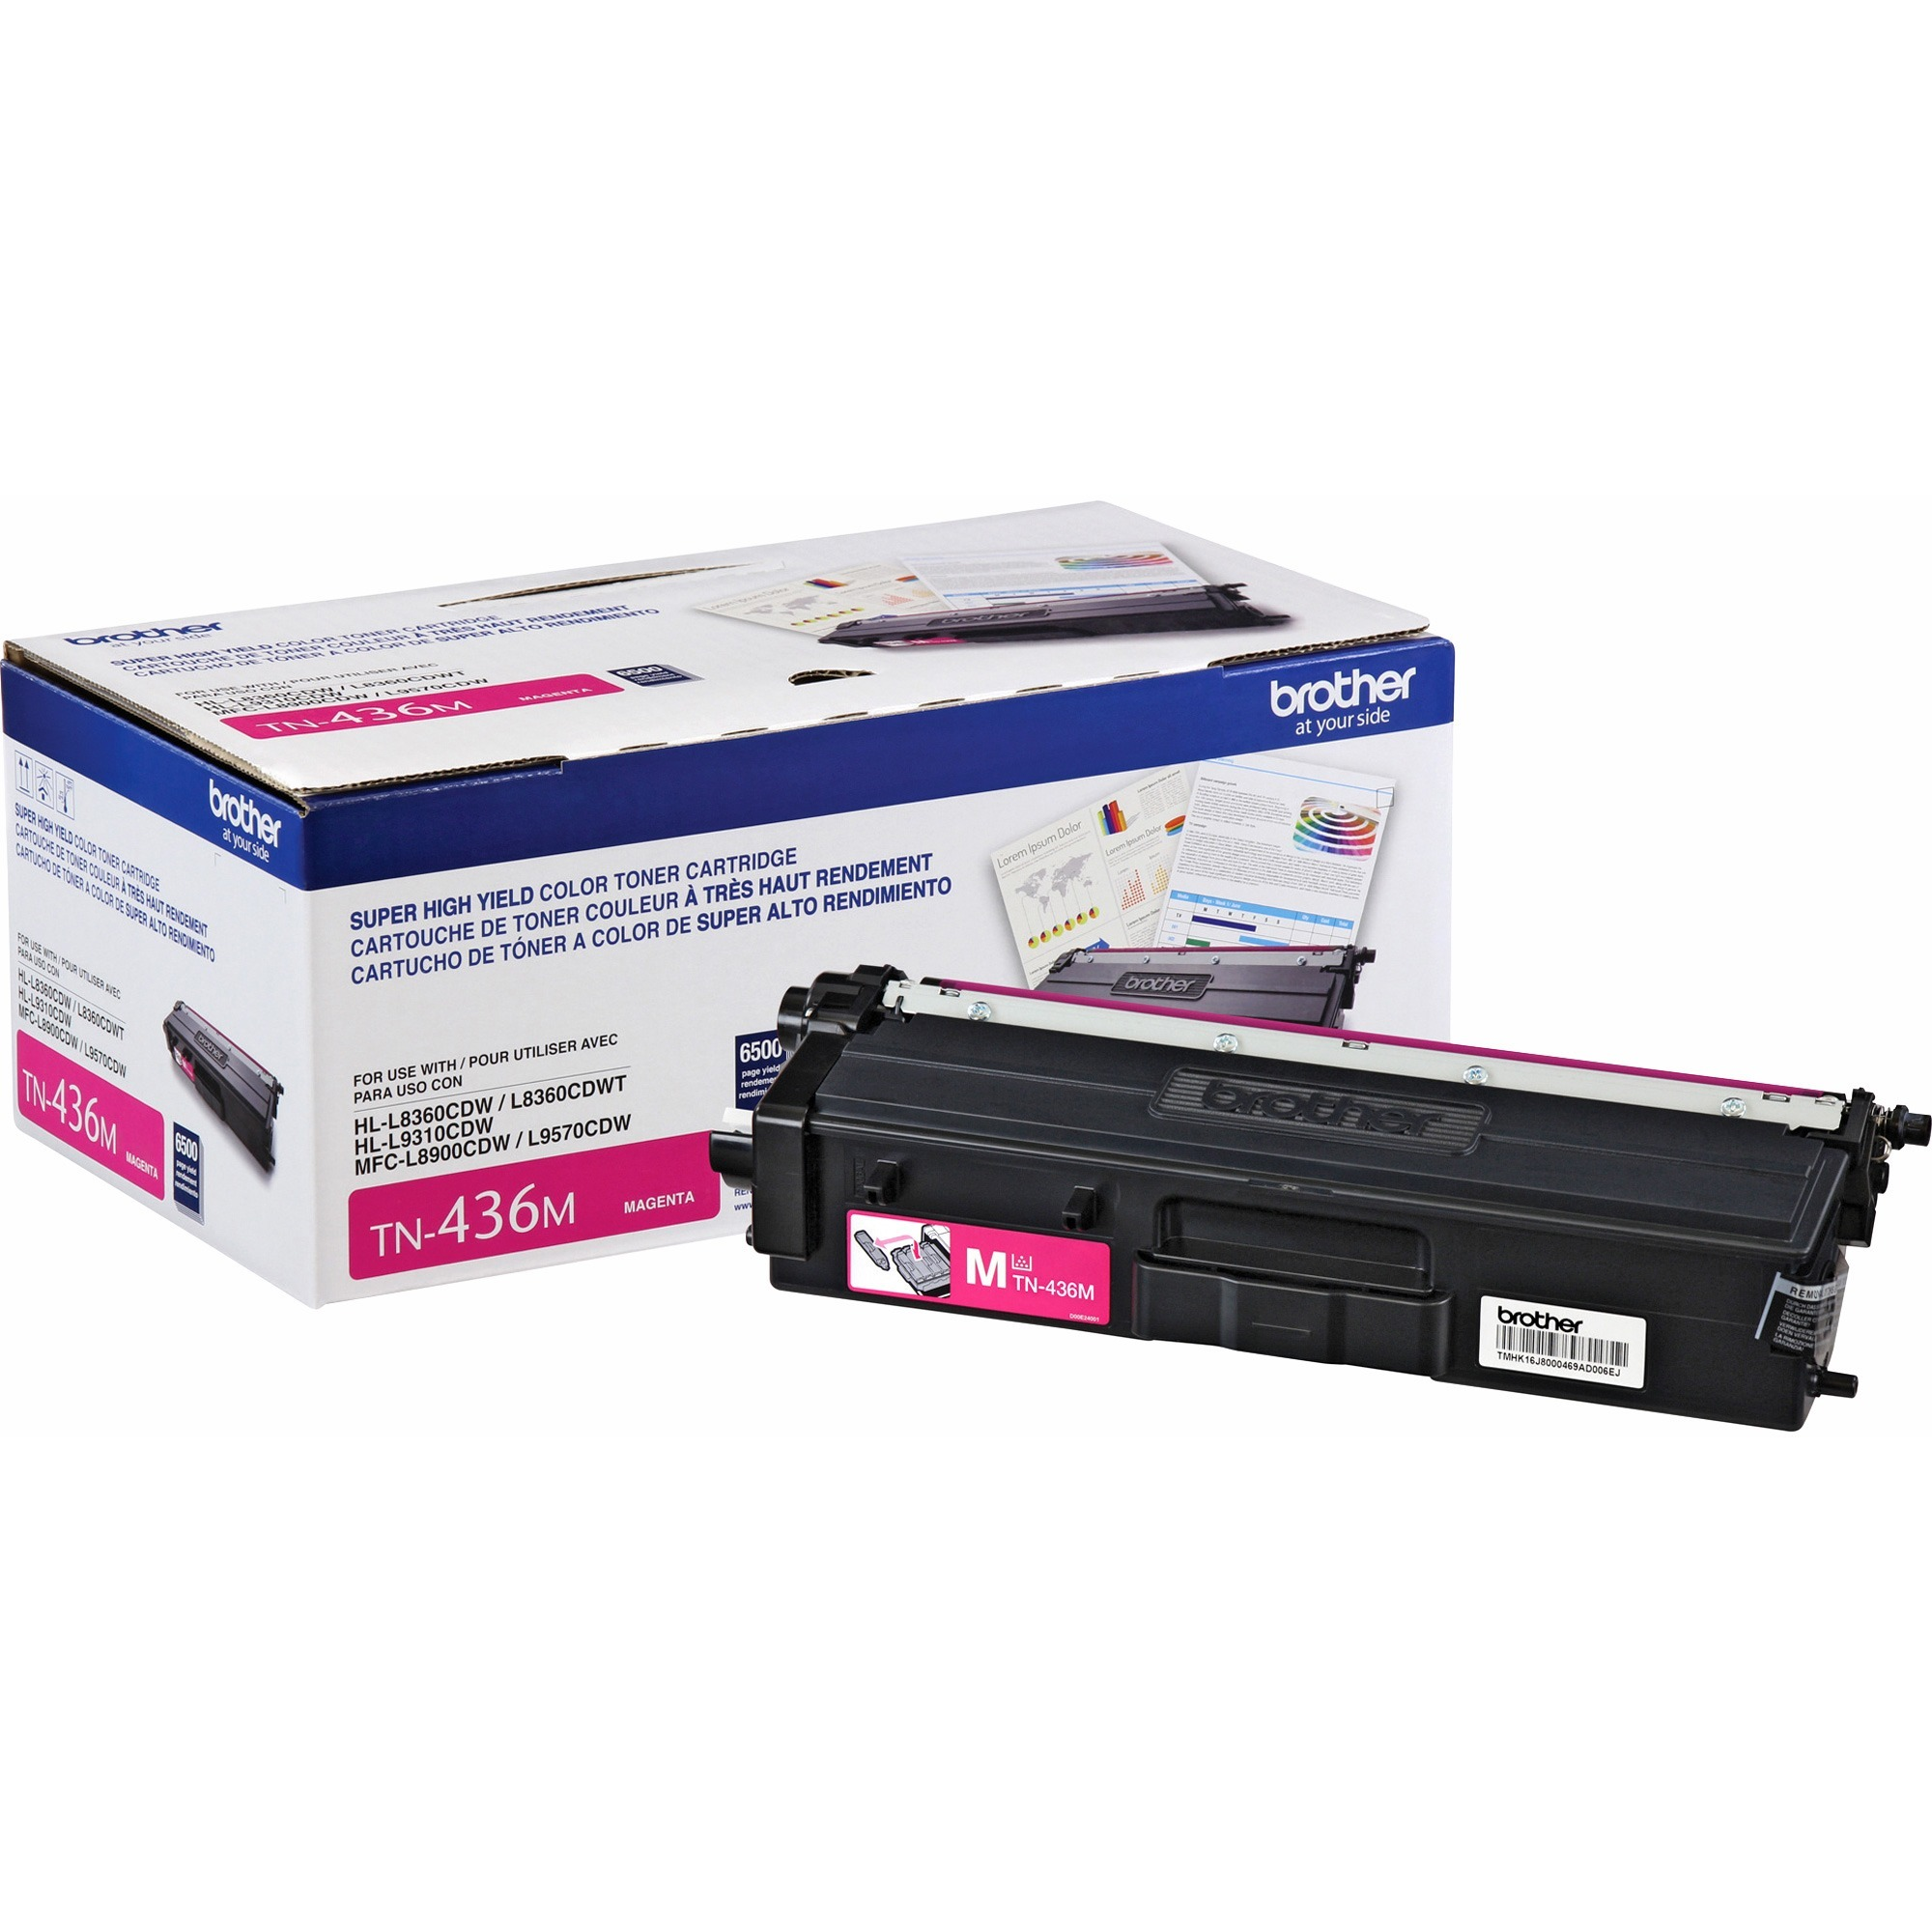 Brother, BRTTN436M, TN436M Toner Cartridge, 1 Each